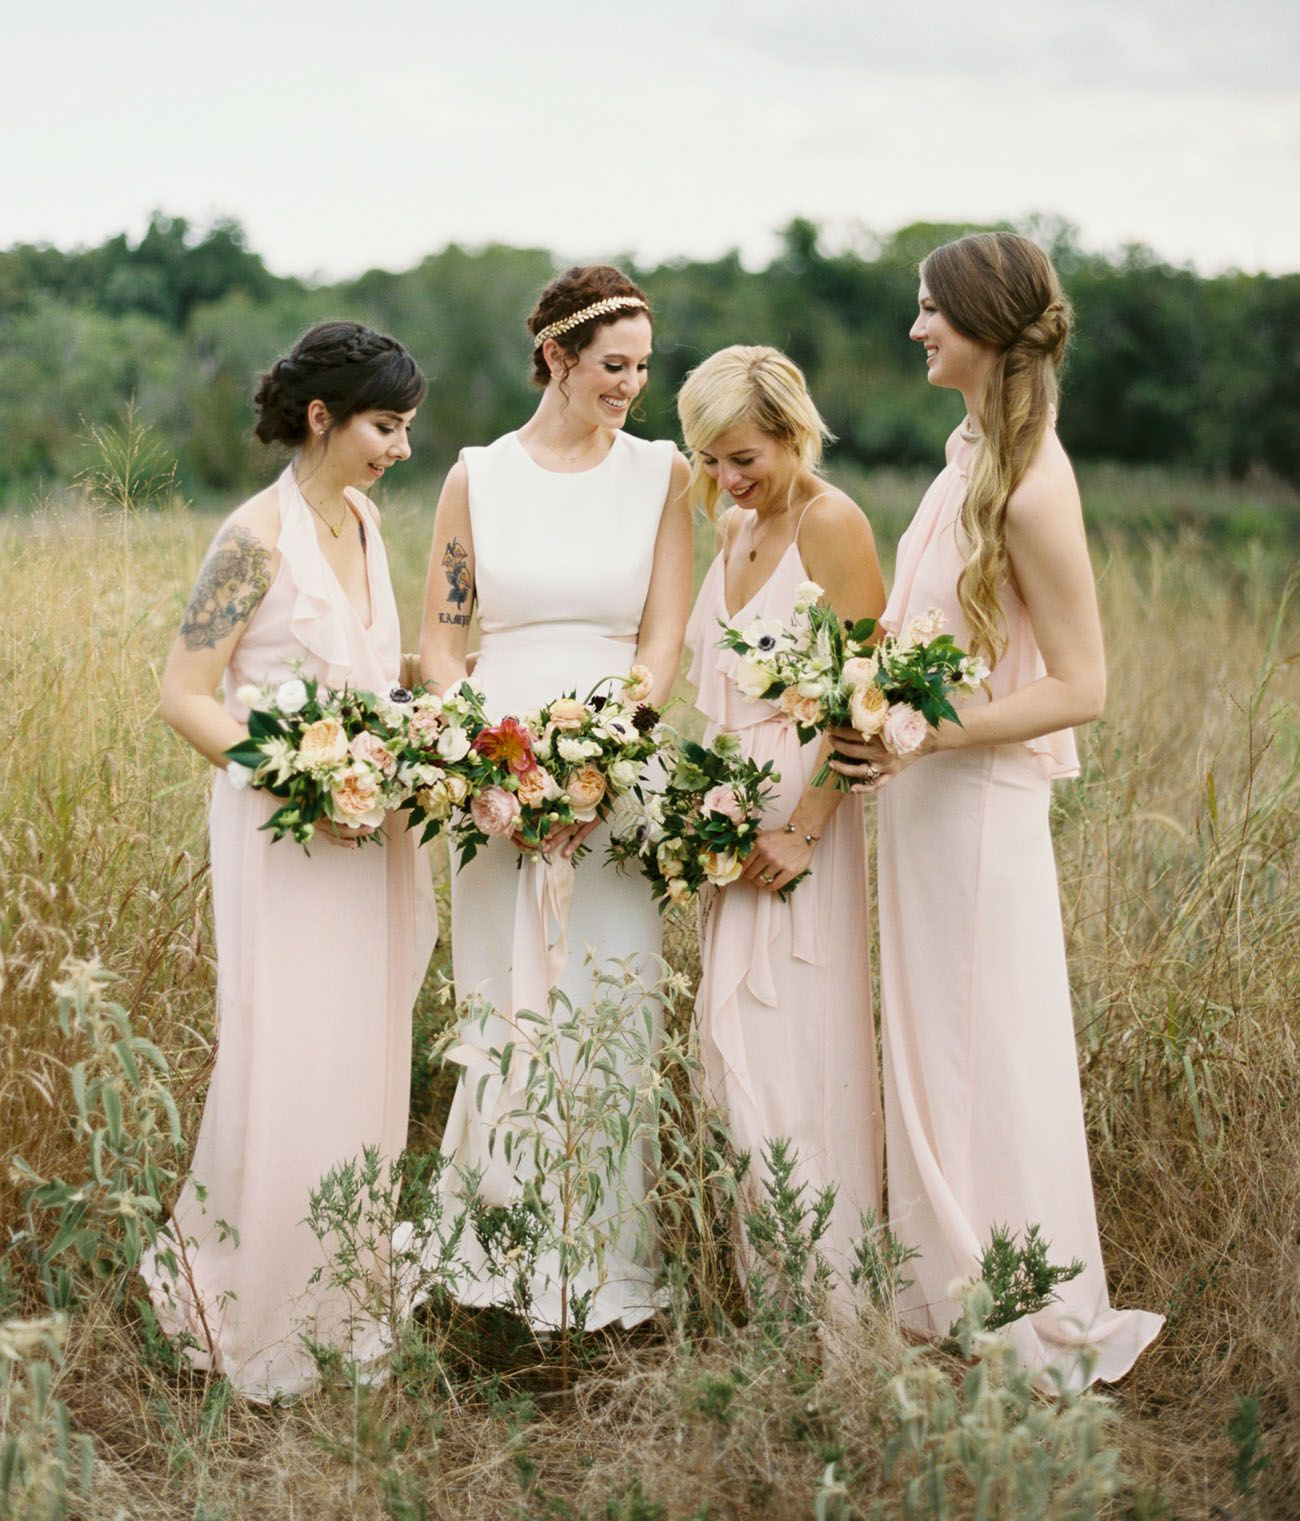 Dallas audubon center wedding elizabeth ryan green weddings dallas audubon center wedding elizabeth ryan blush bridesmaid dresseswedding ombrellifo Image collections